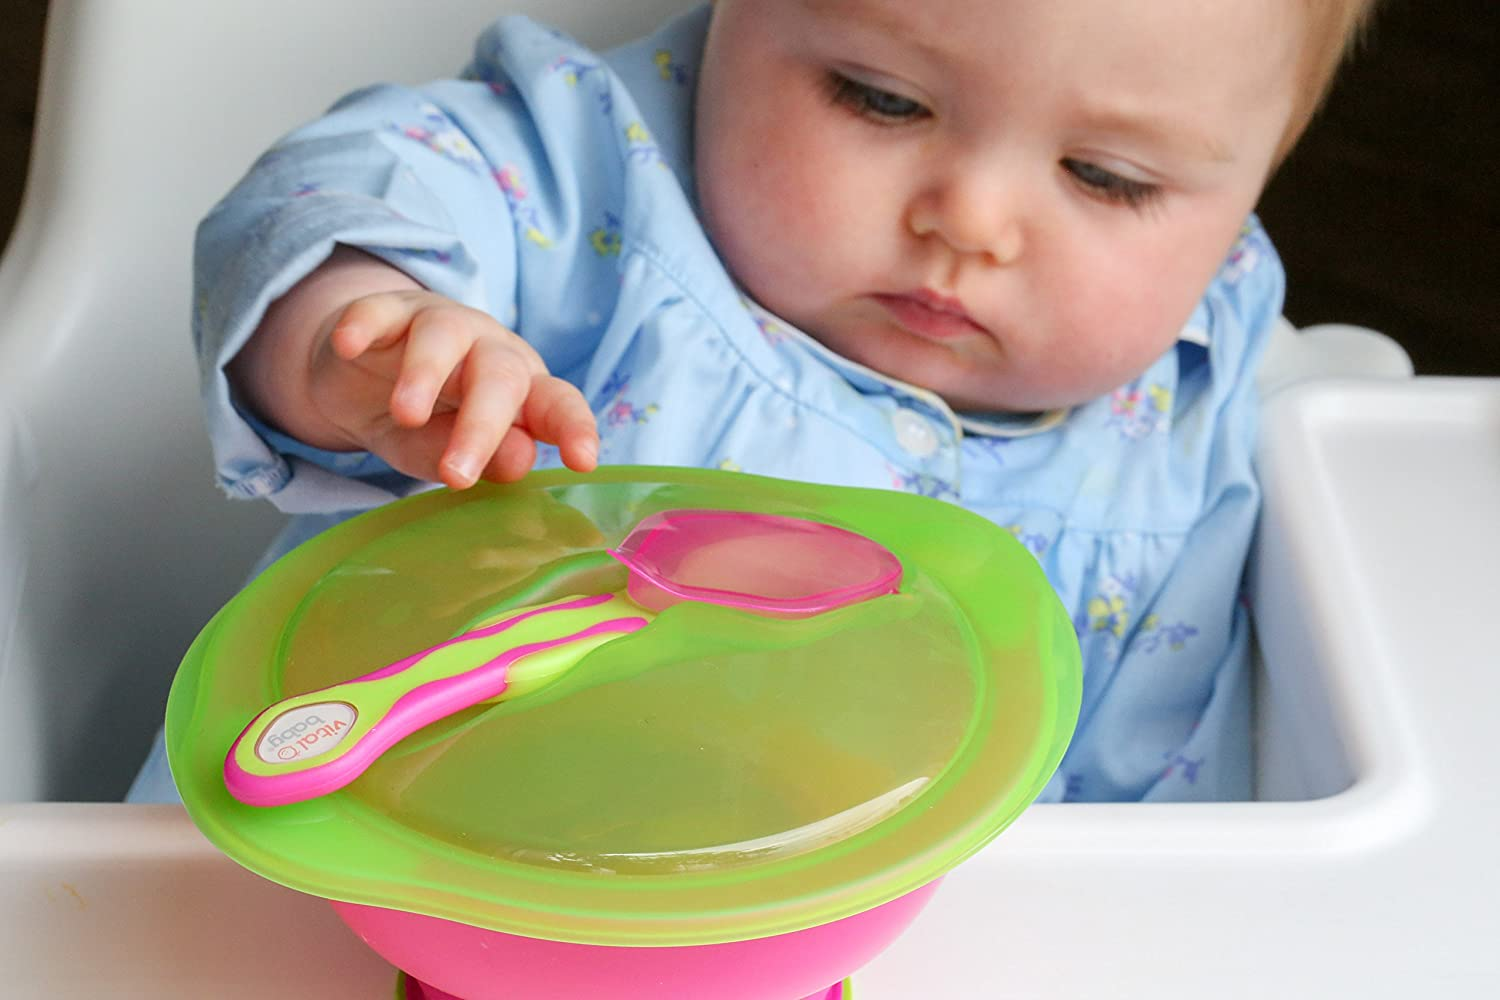 Pink Vital Baby Unbelievabowl Suction Bowl with Lid /& Spoon